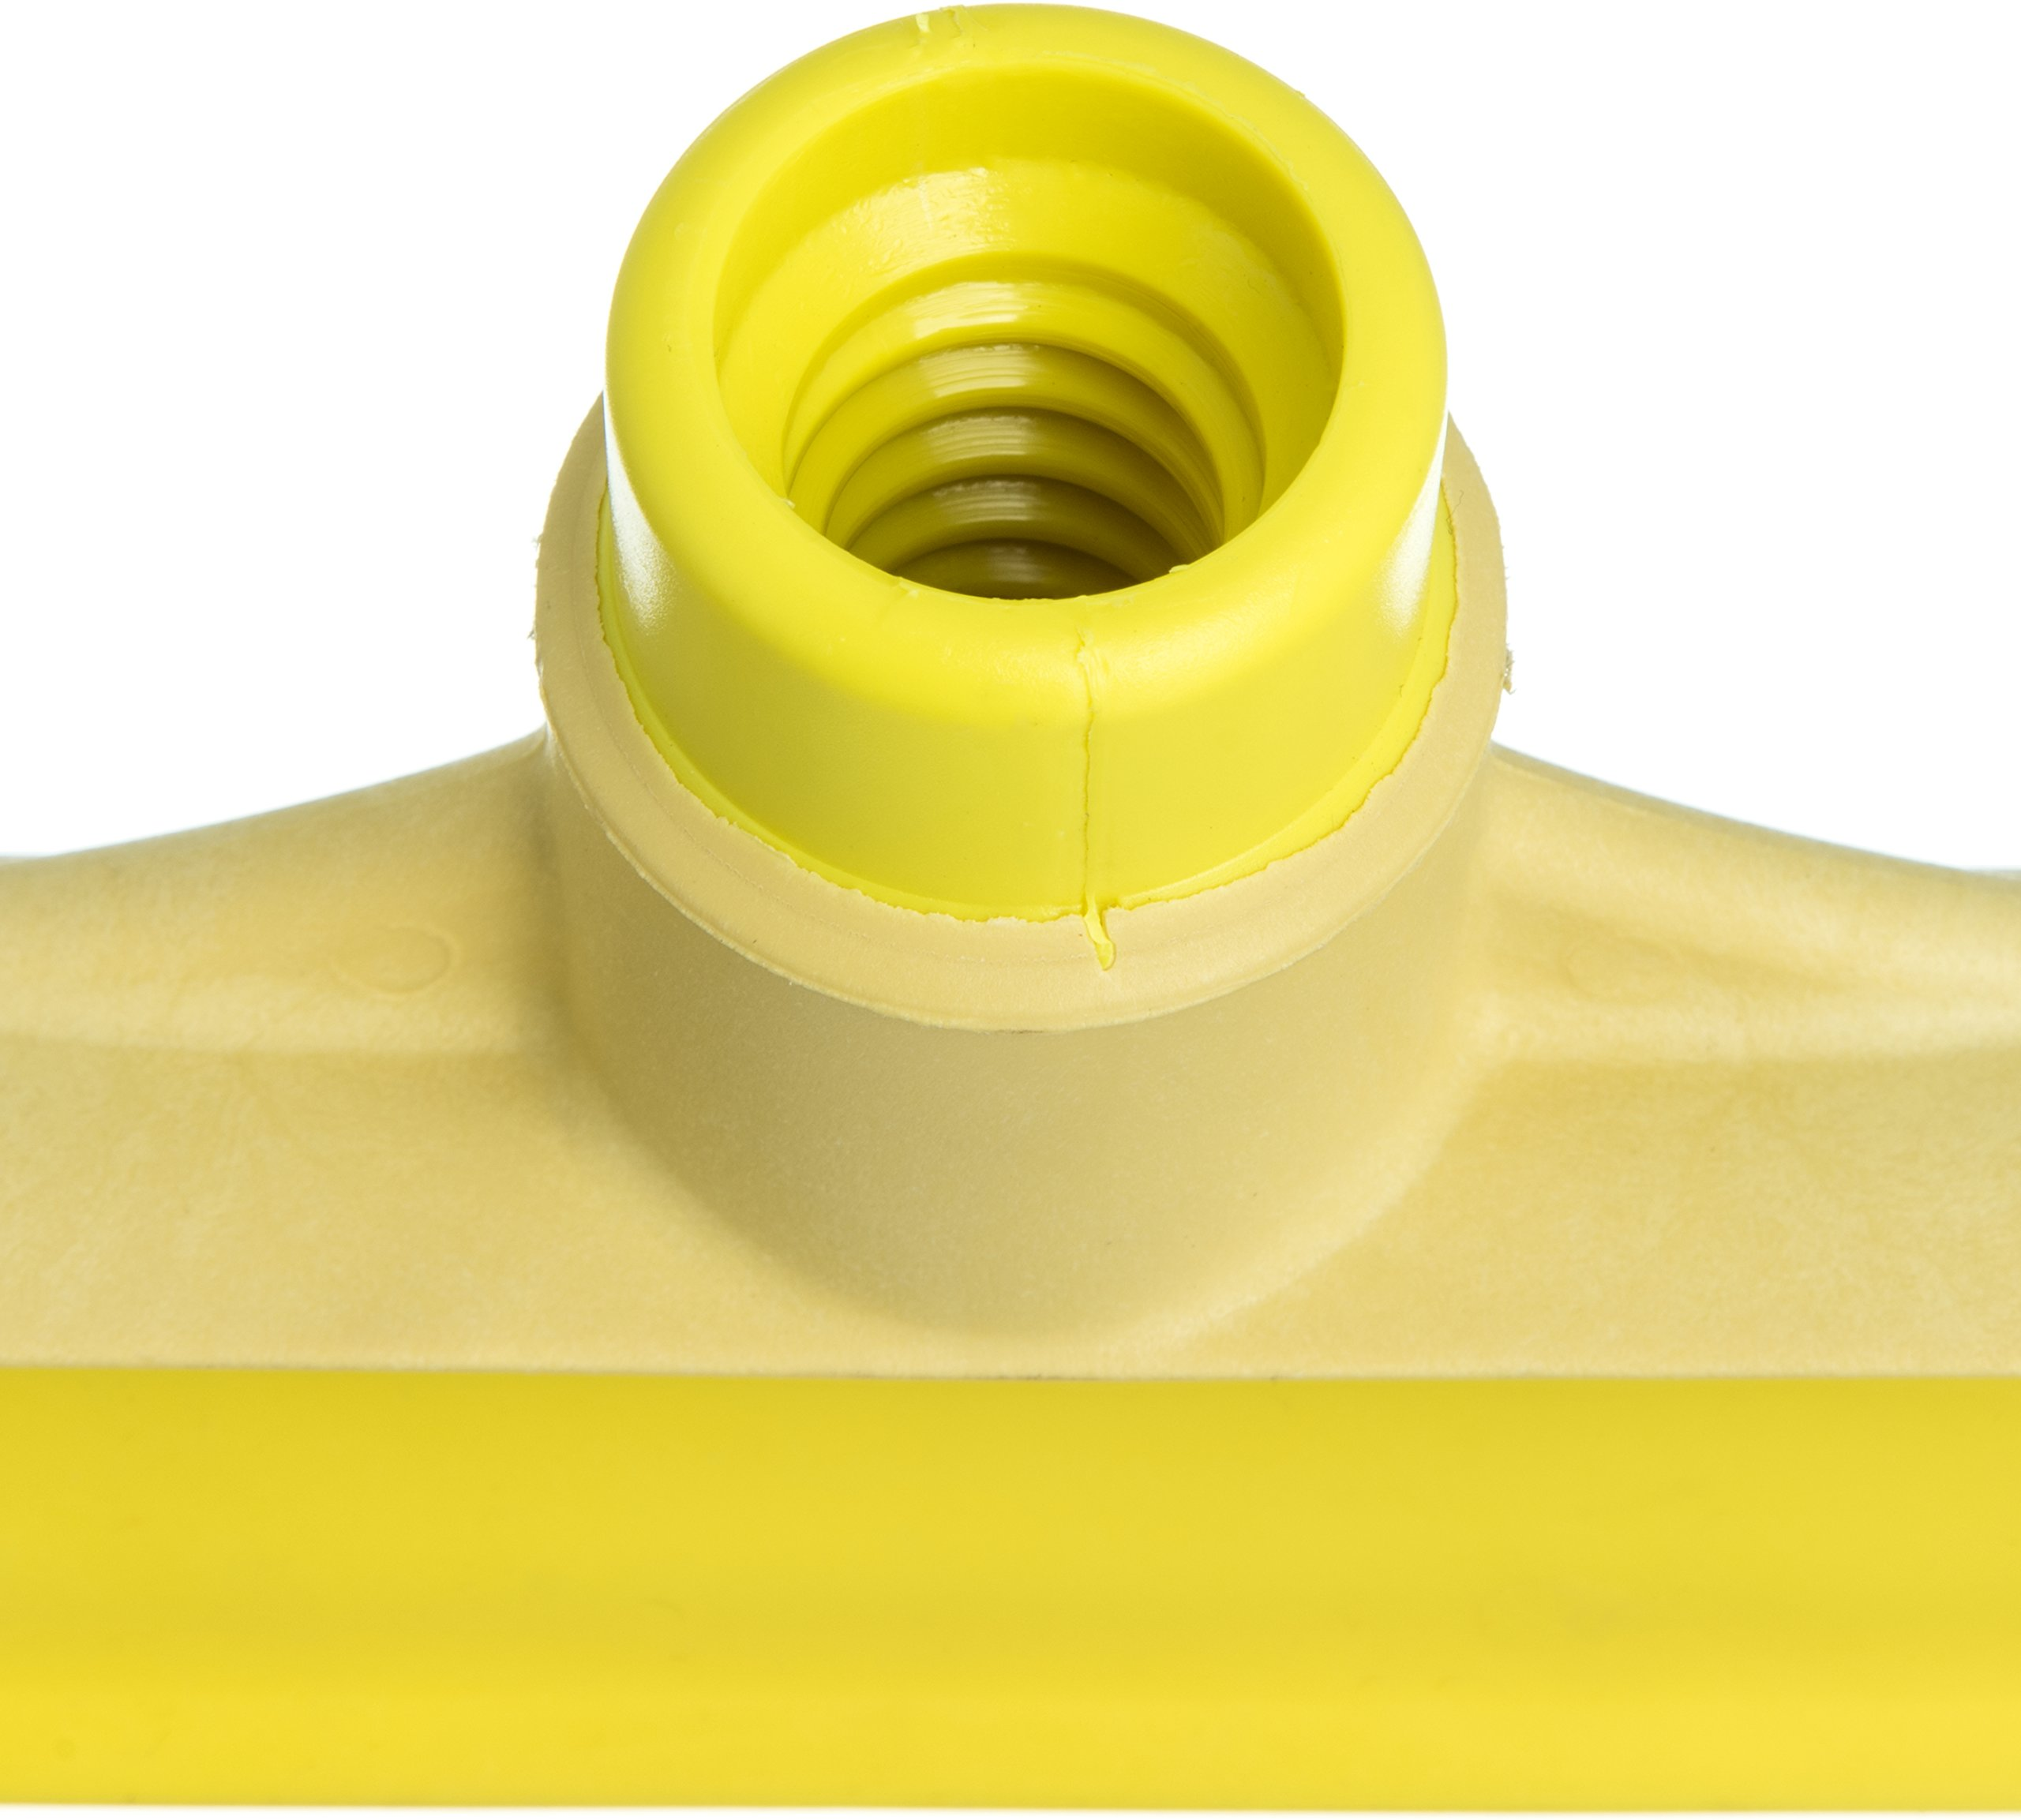 Carlisle 3656704 Solid One-Piece Foam Rubber Head Floor Squeegee, 20'' Length, Yellow (Case of 6) by Carlisle (Image #9)